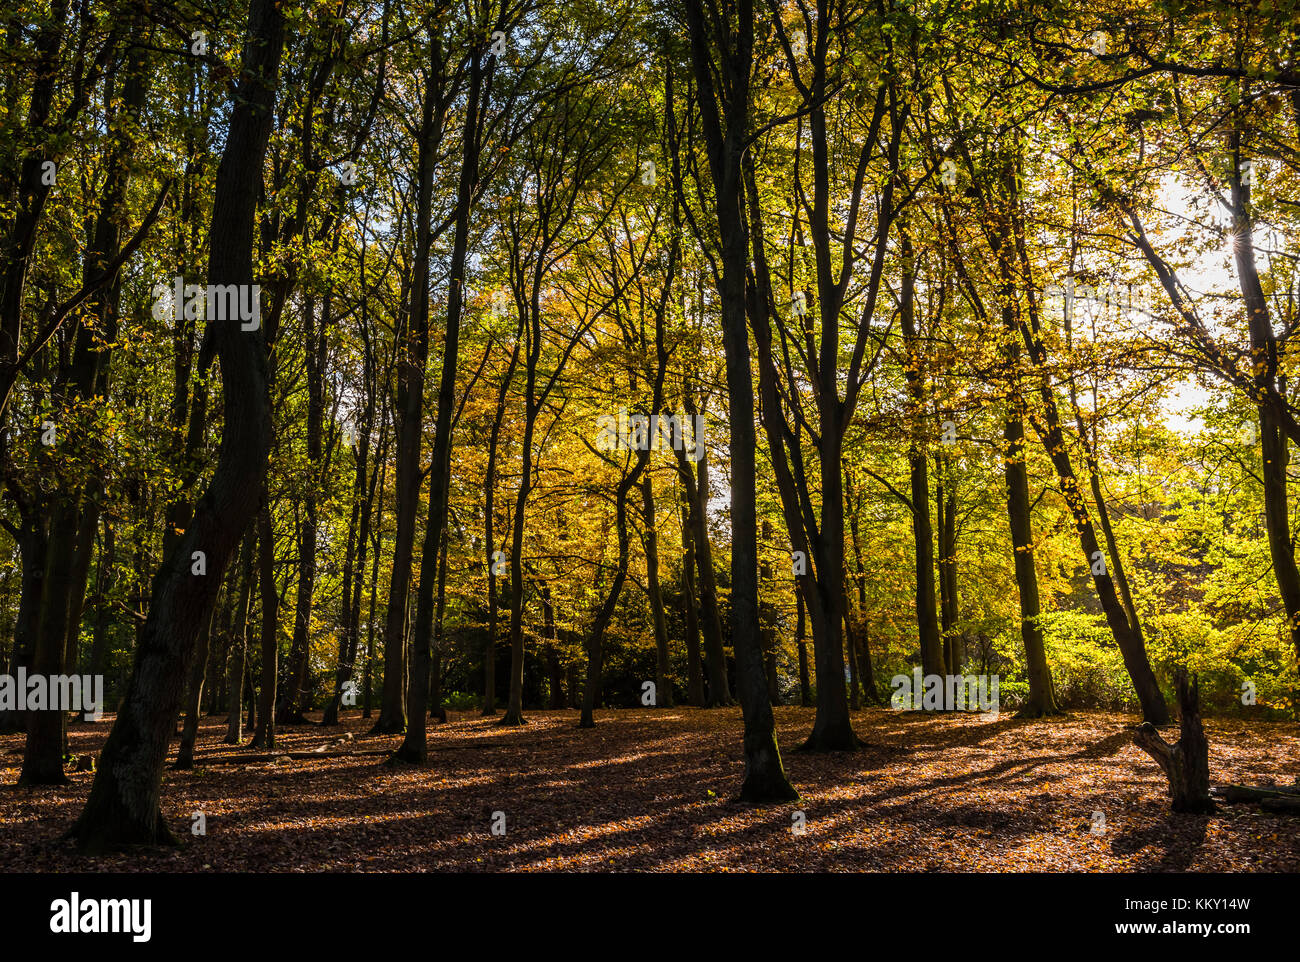 Sun bursting through autumn trees at Trent Park in north London, UK - Stock Image